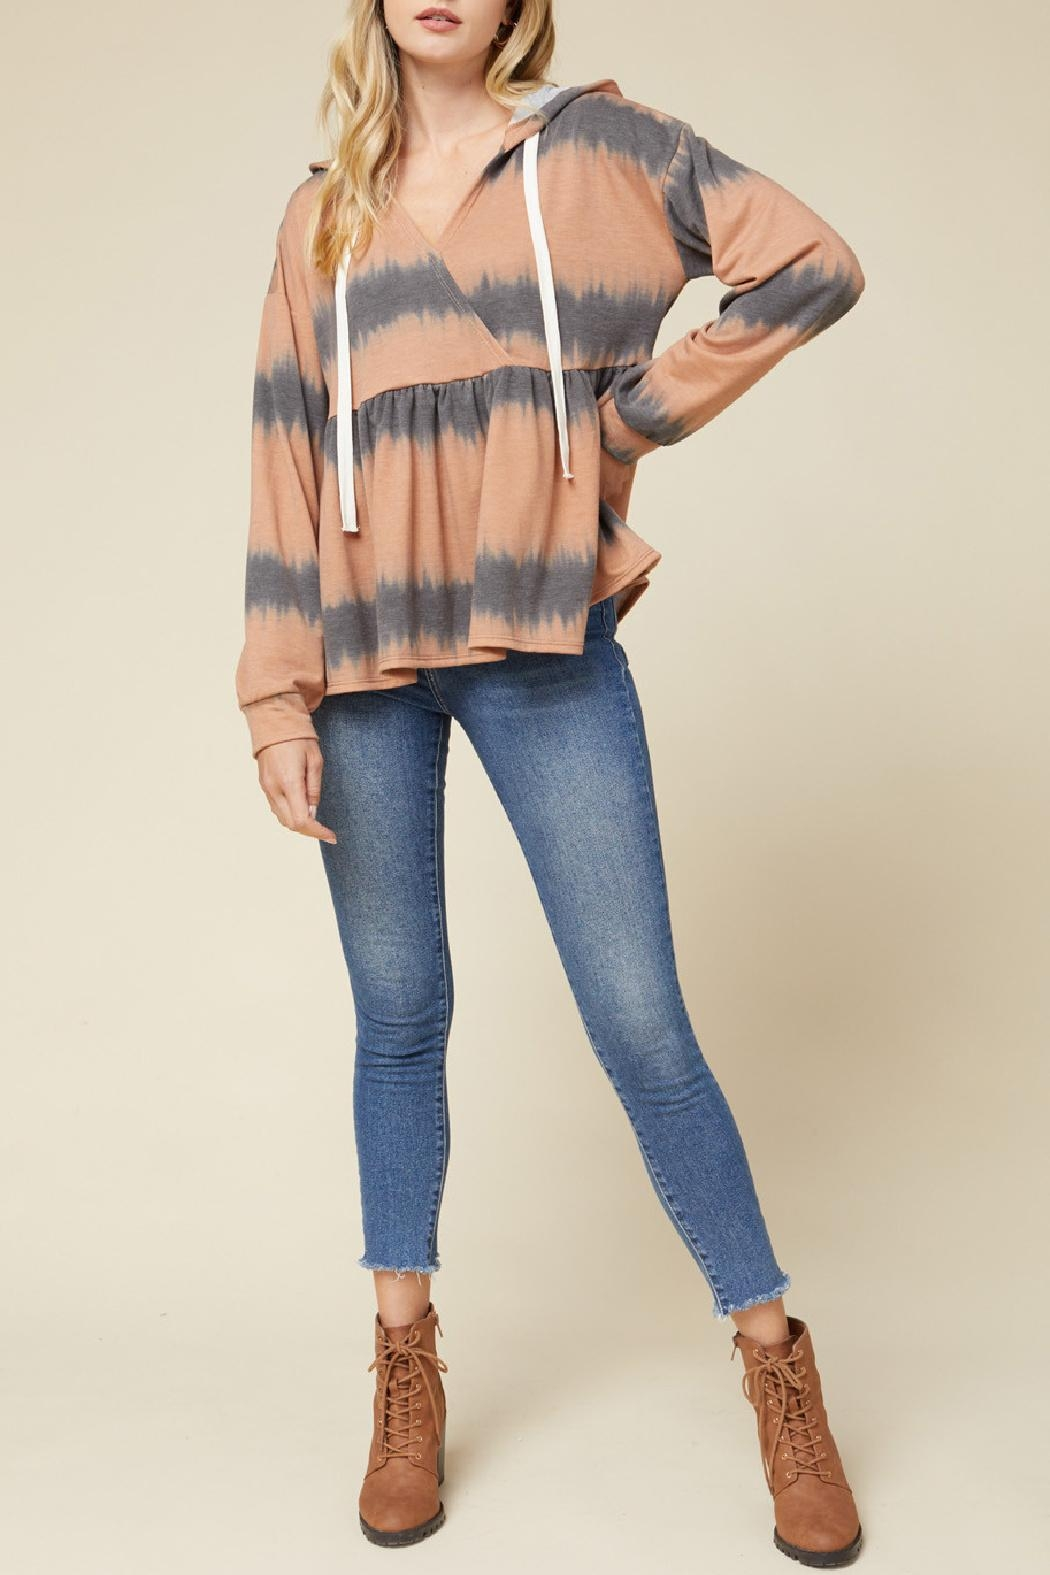 Entro Hooded Peplum Pullover - Main Image